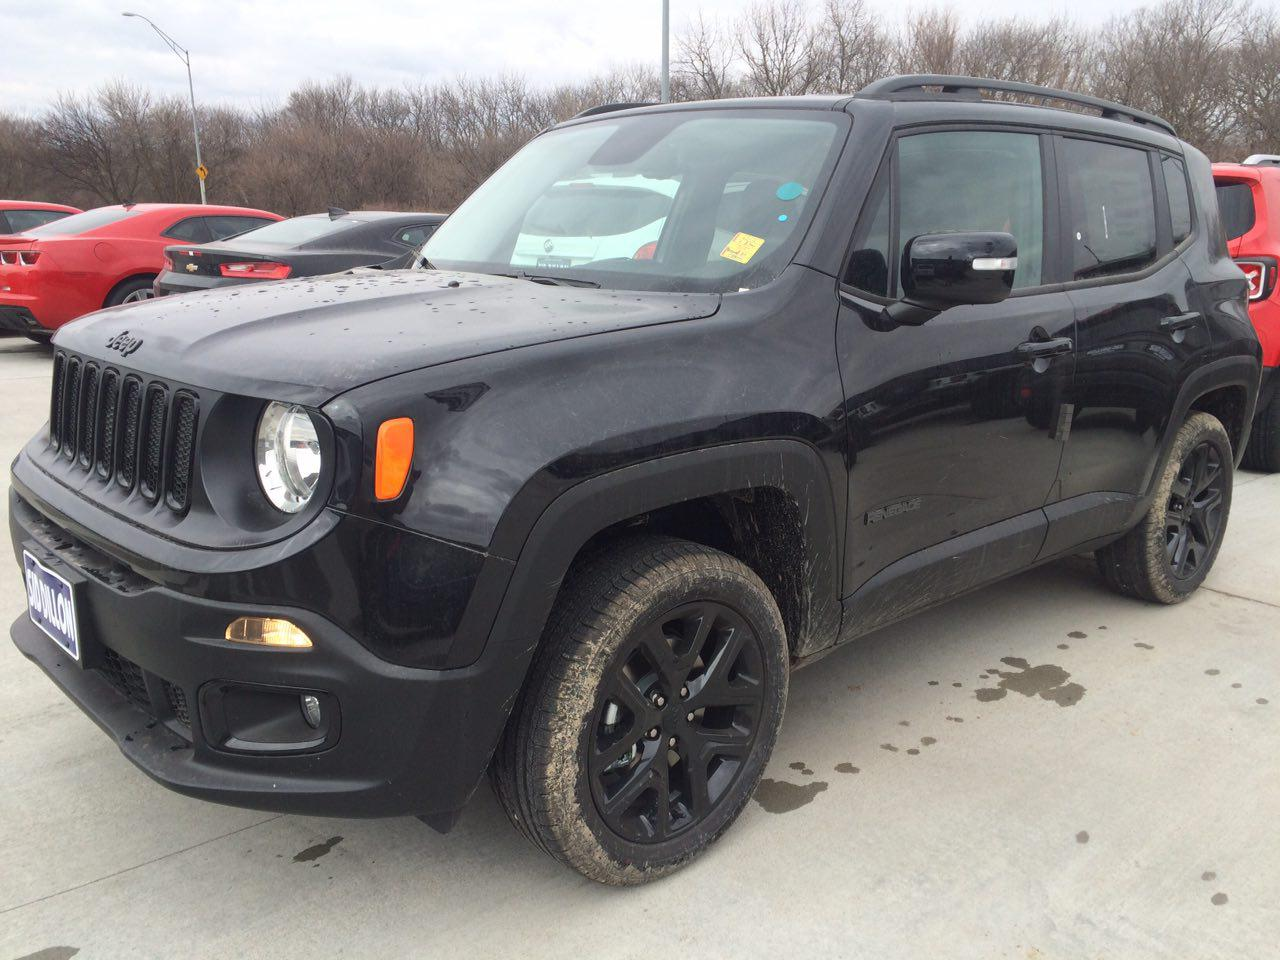 Batman vs Superman Jeep Renegade